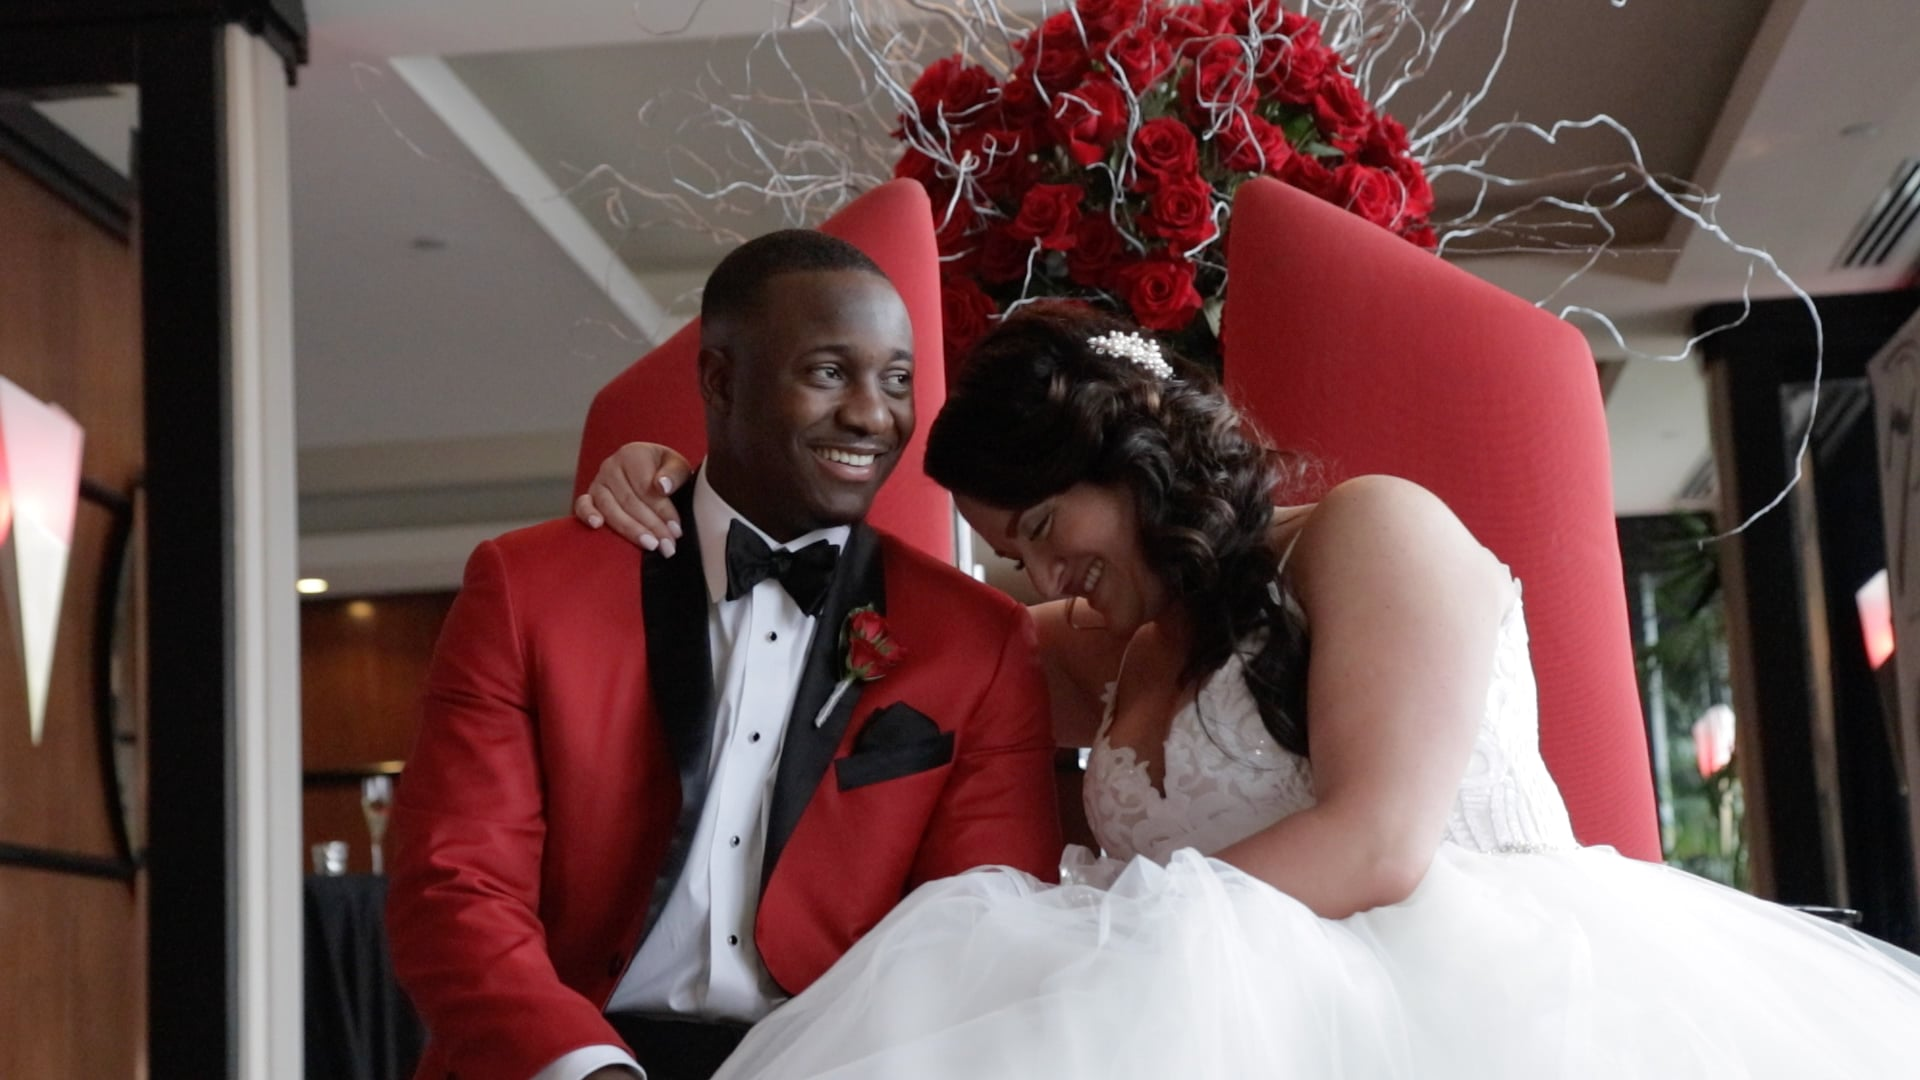 The Galt House - Jessi and Bilal Powell